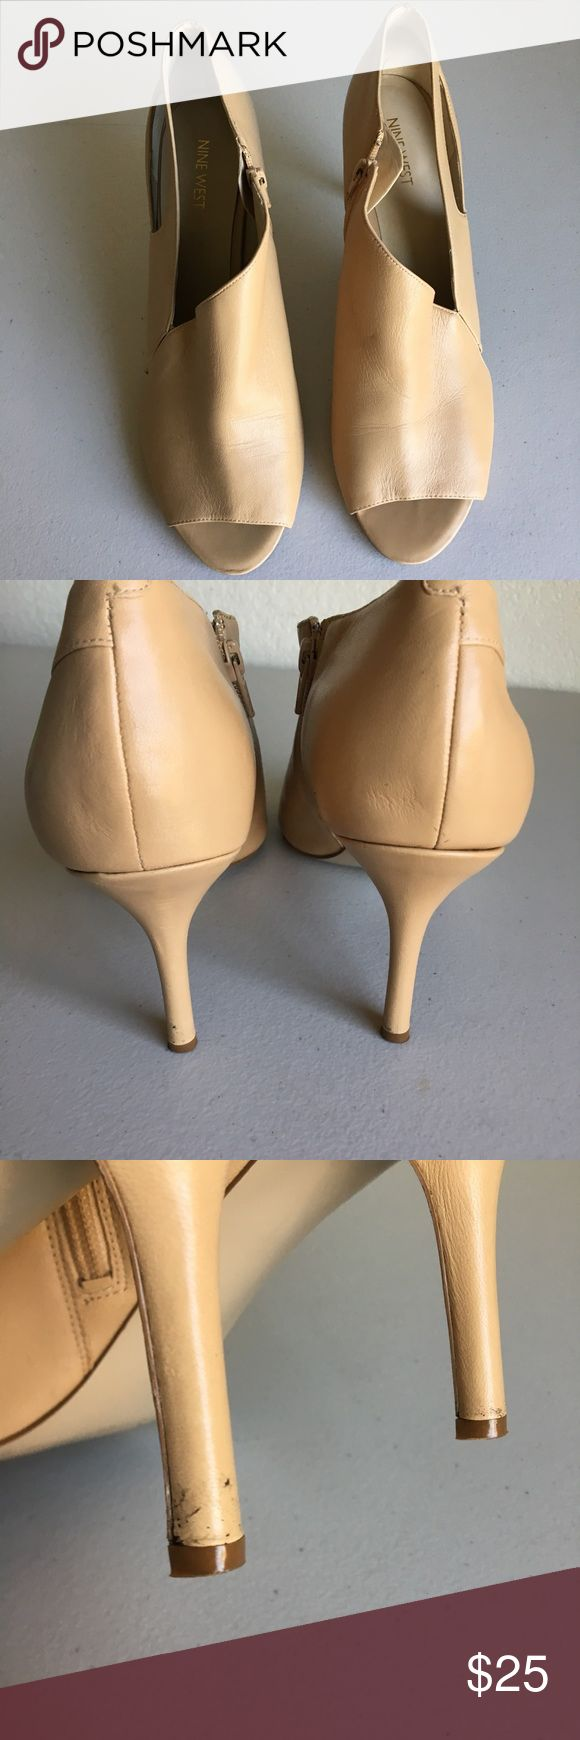 Nine West Pumps, size 12 Super cute, Nine West Pumps, size 12 color tan, feature a zipper on the side and a slit on the other side of each shoe, the are still in excellent shape except for the heels, but is barely noticeable. Nine West Shoes Heels